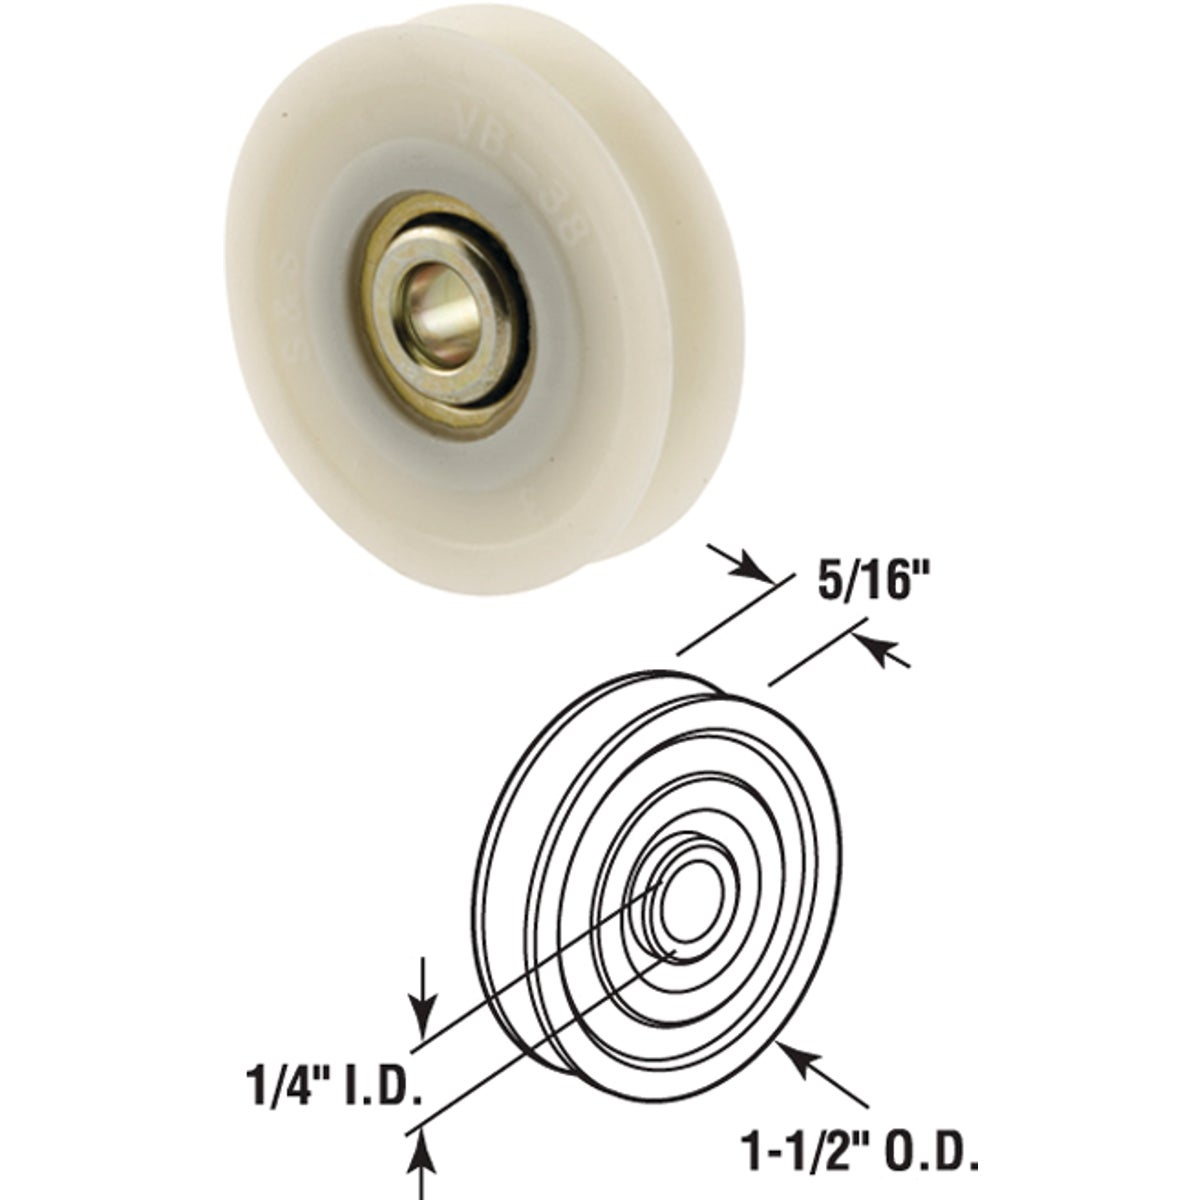 PATIO DOOR ROLLER - 13562 by Prime Line Products